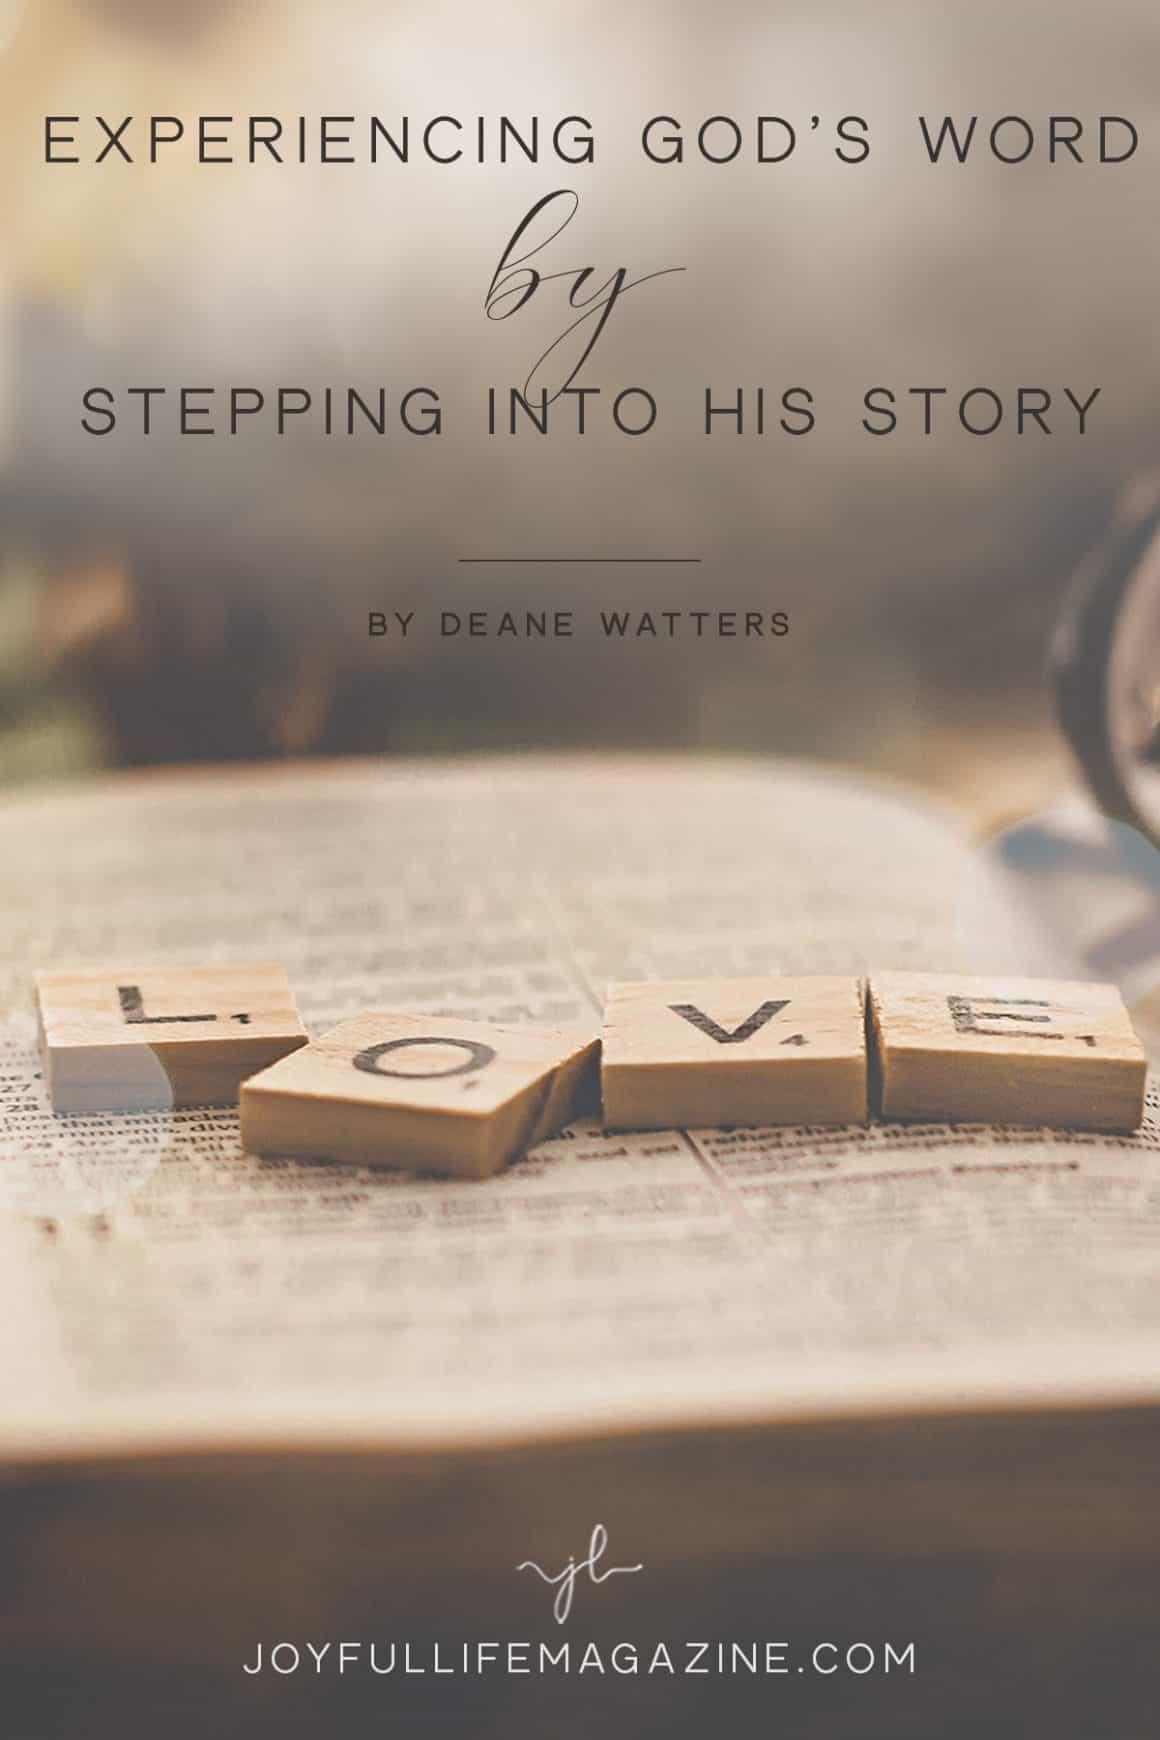 Experience God's Word by Stepping into His Story   by Deane Watters   The Joyful Life Magazine